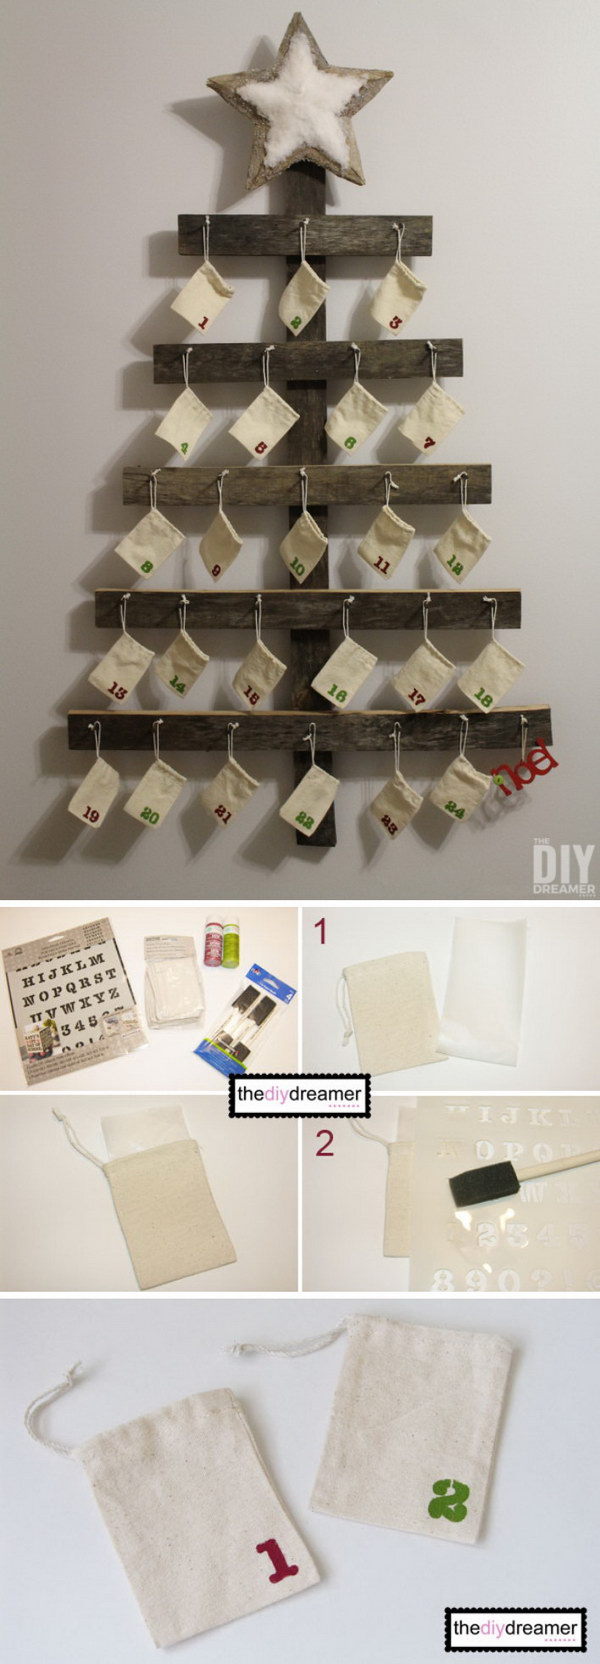 25 Diy Rustic Christmas Decoration Ideas Amp Tutorials 2017